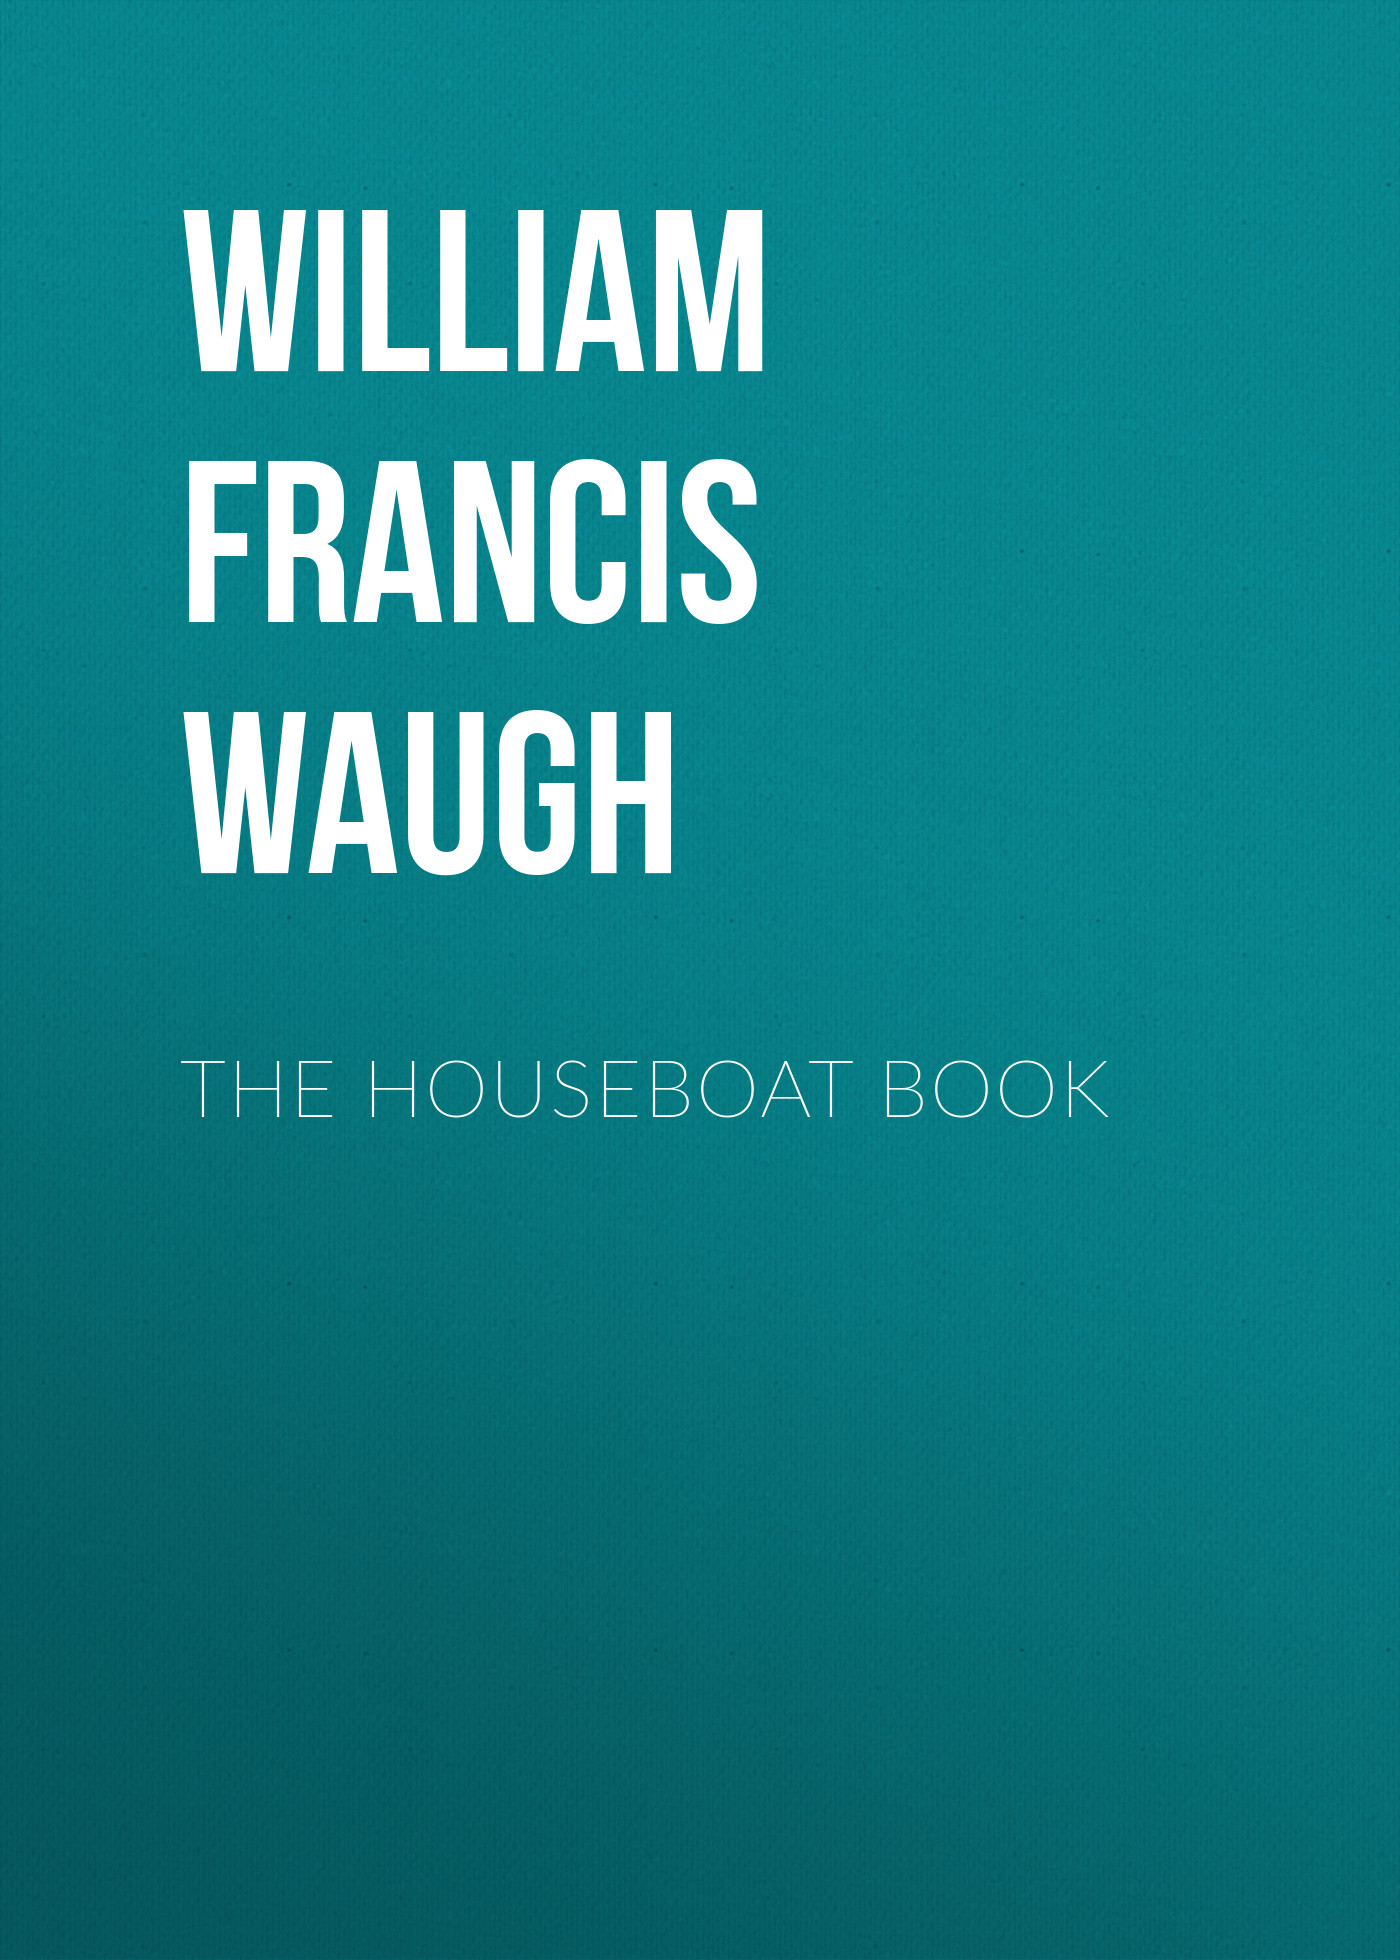 William Francis Waugh The houseboat book daisy waugh bordeaux housewives